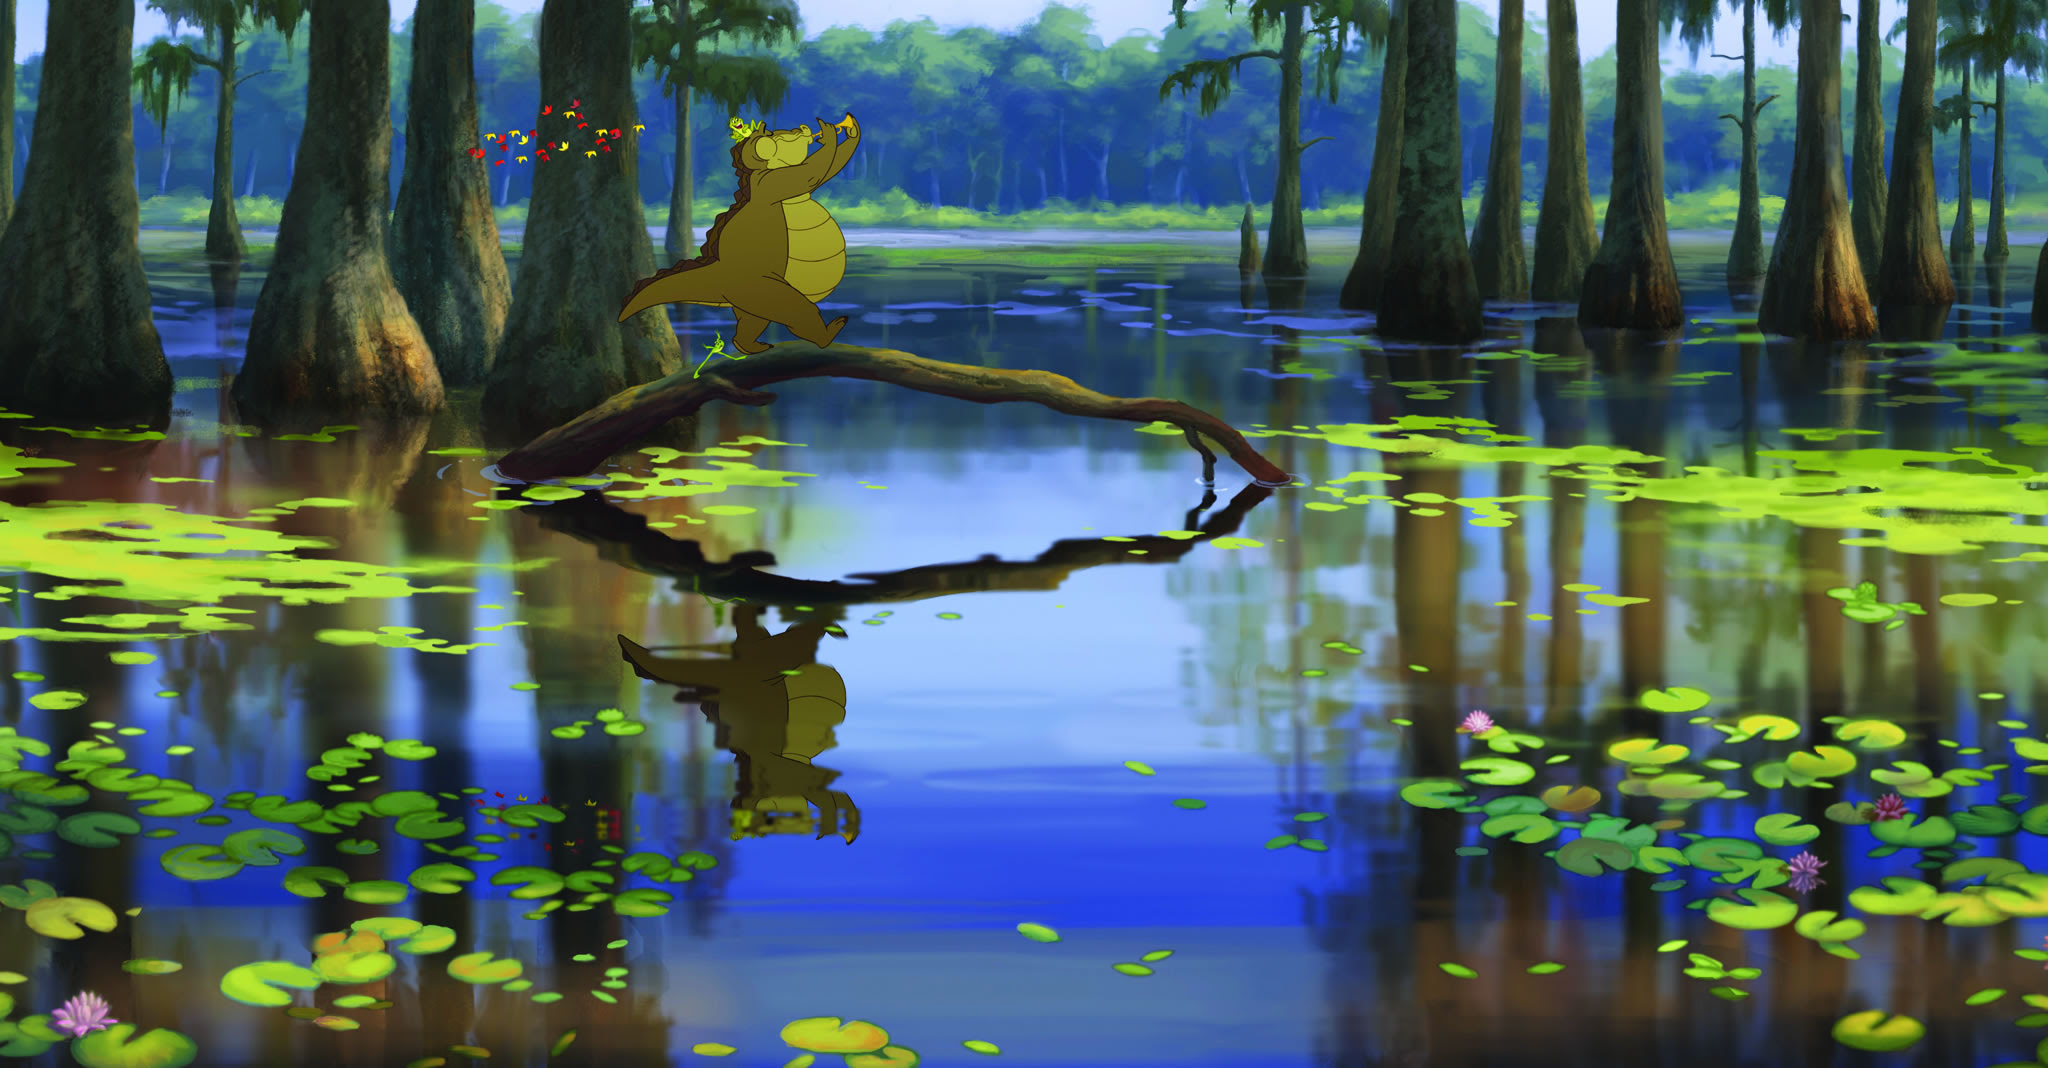 Louis The Gator In The Bayou From Princess And The Frog Desktop